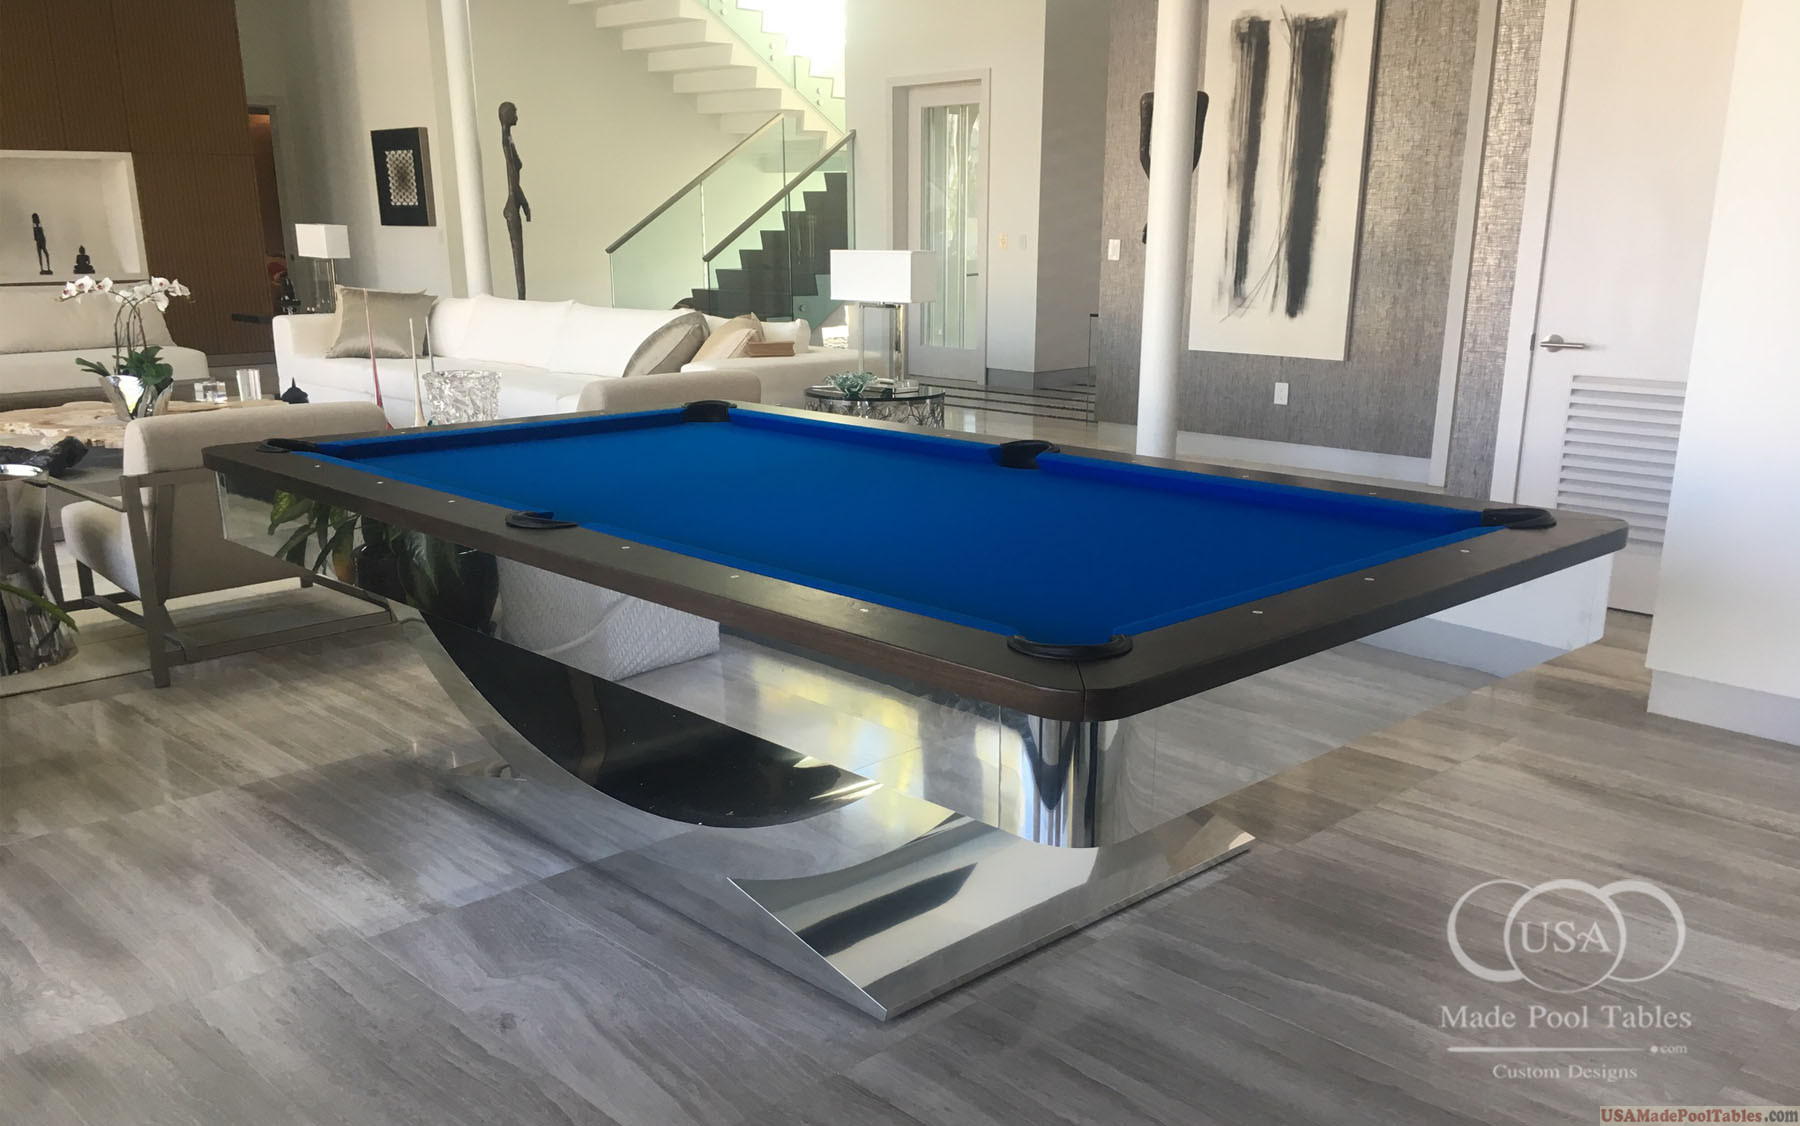 CONTEMPORARY POOL TABLES MODERN POOL TABLES CUSTOM POOL TABLES - Chrome pool table